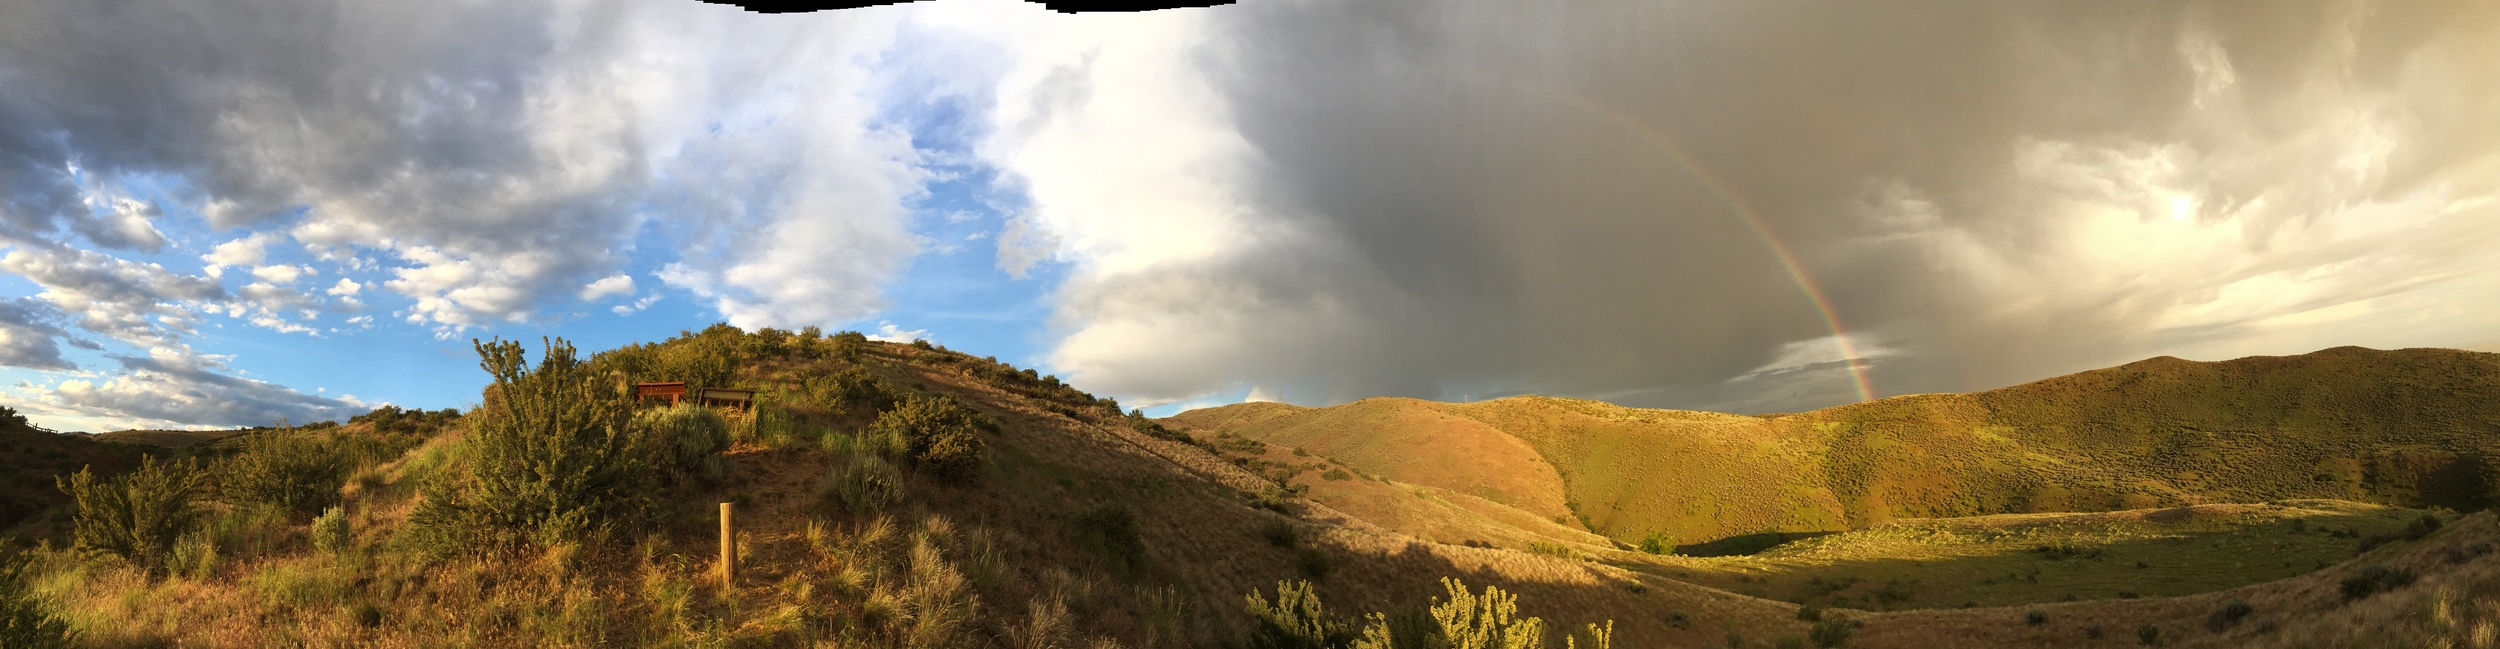 iPhone Panorama to show the crazy skies.